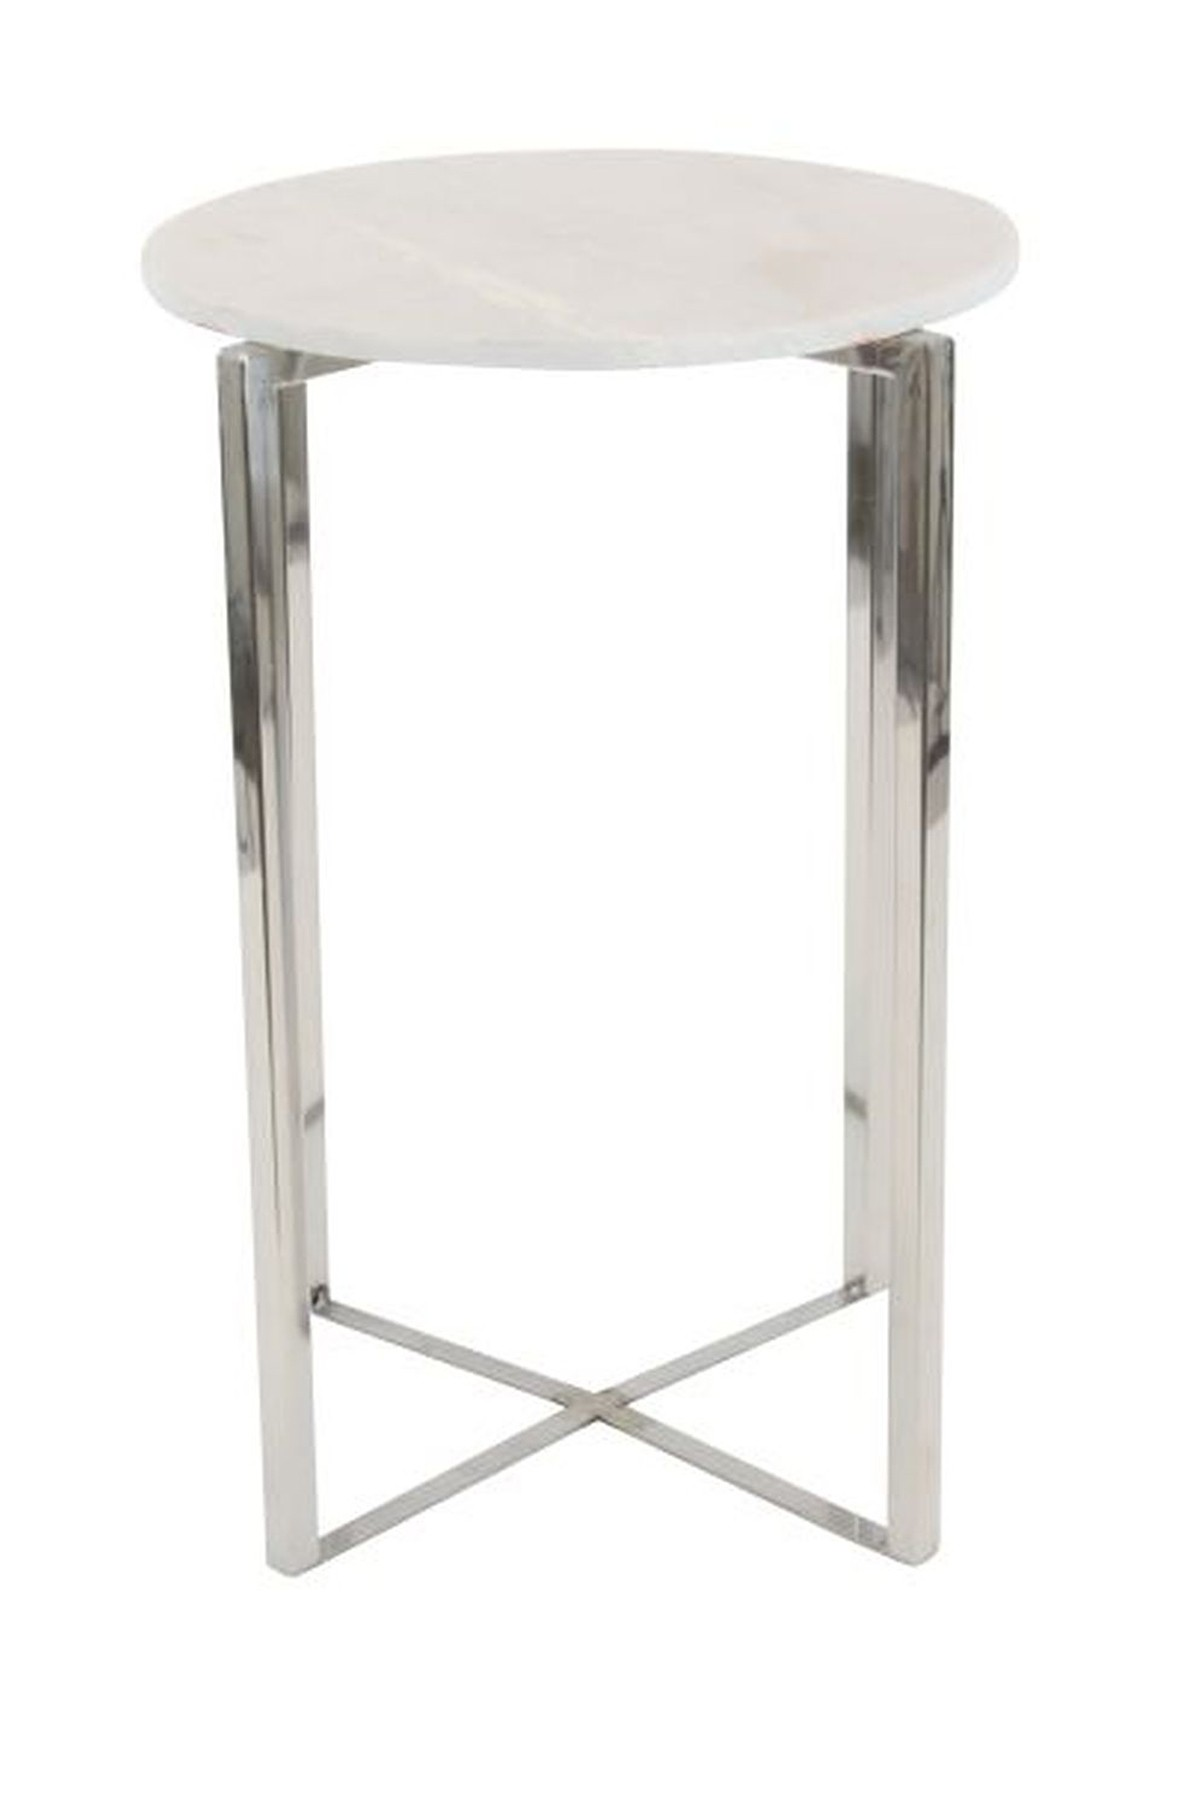 uma white silver stainless steel marble accent table nordstrom tablecloth for small round screen porch furniture tray tablet eagle stand cloth tablecloths ashley stewart green top